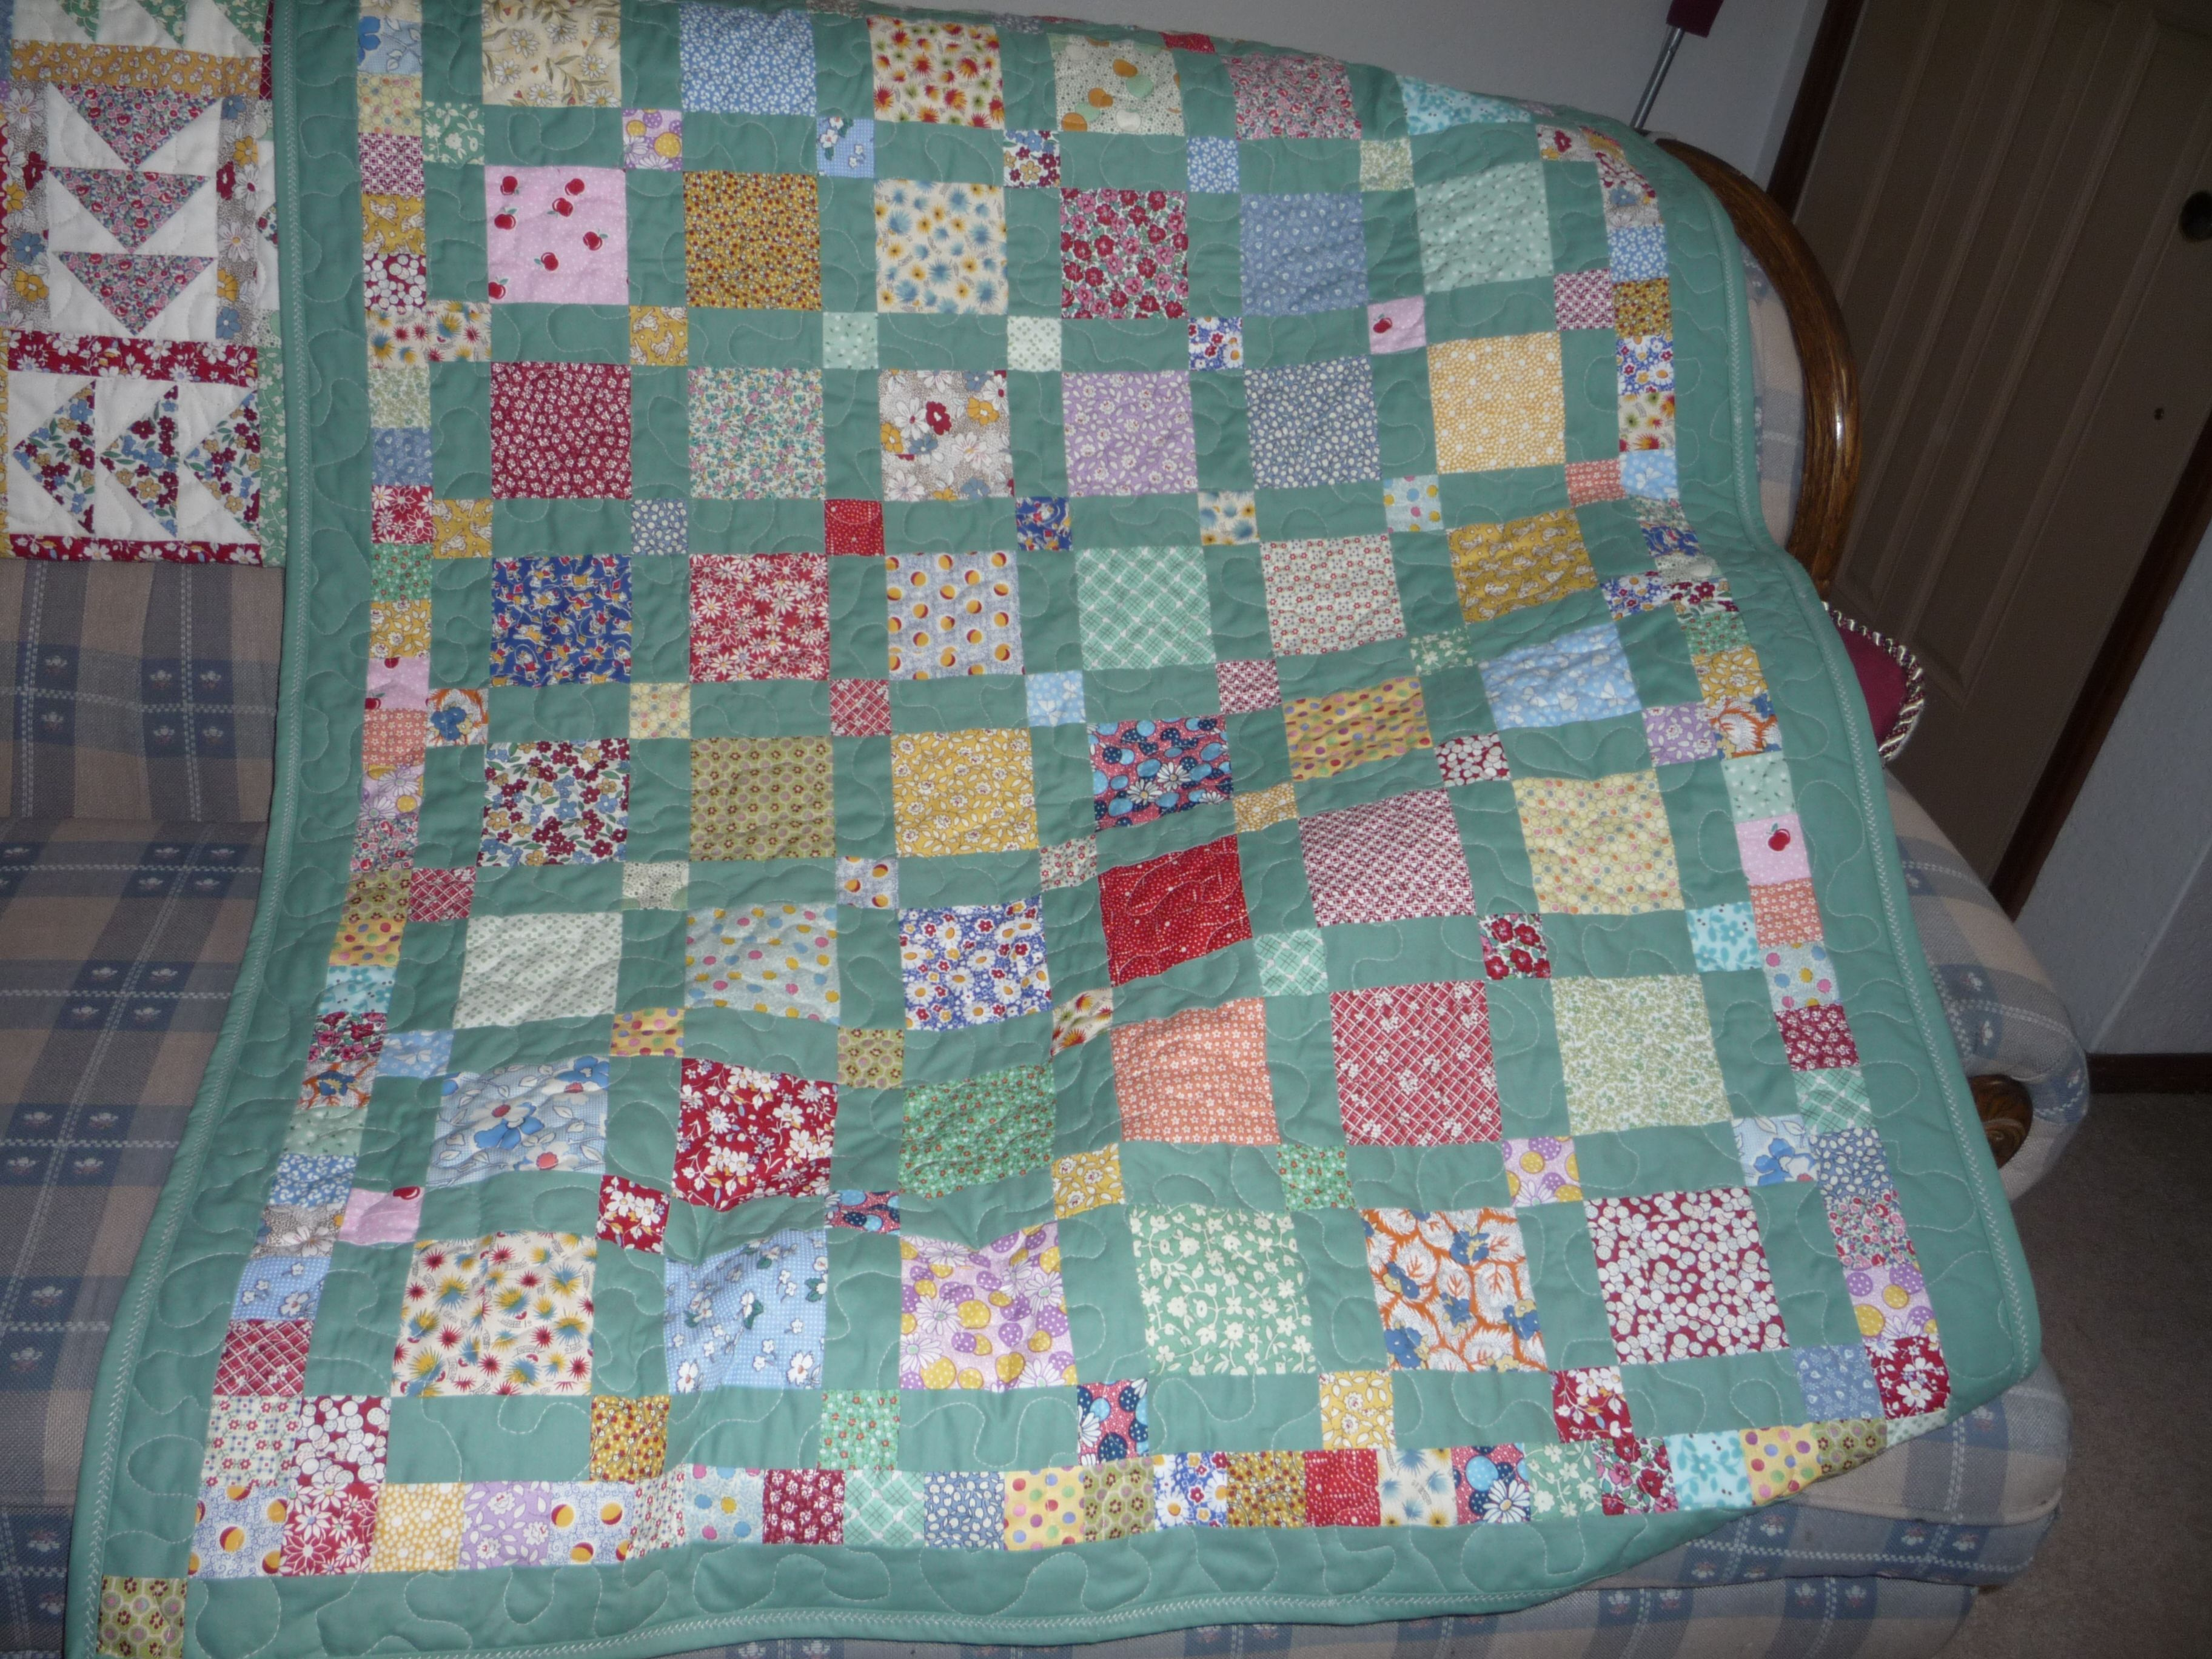 feedsack quilt patterns - Google Search | Feedsack Quilts ... : feedsack quilts - Adamdwight.com